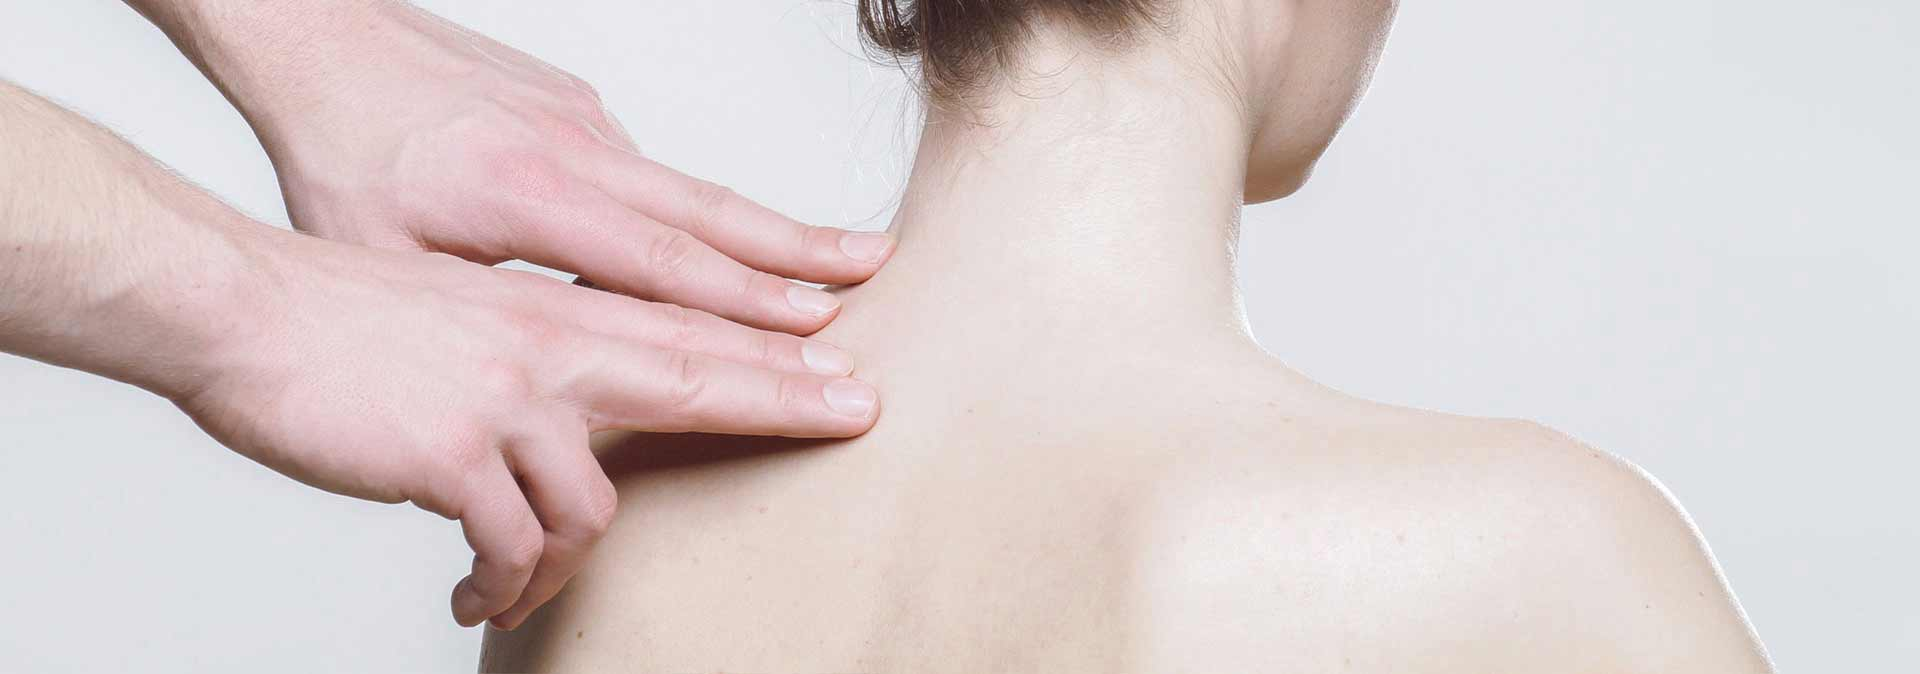 Chiropractor, Cape Town | Atlantic Spine & Joint Health Centre